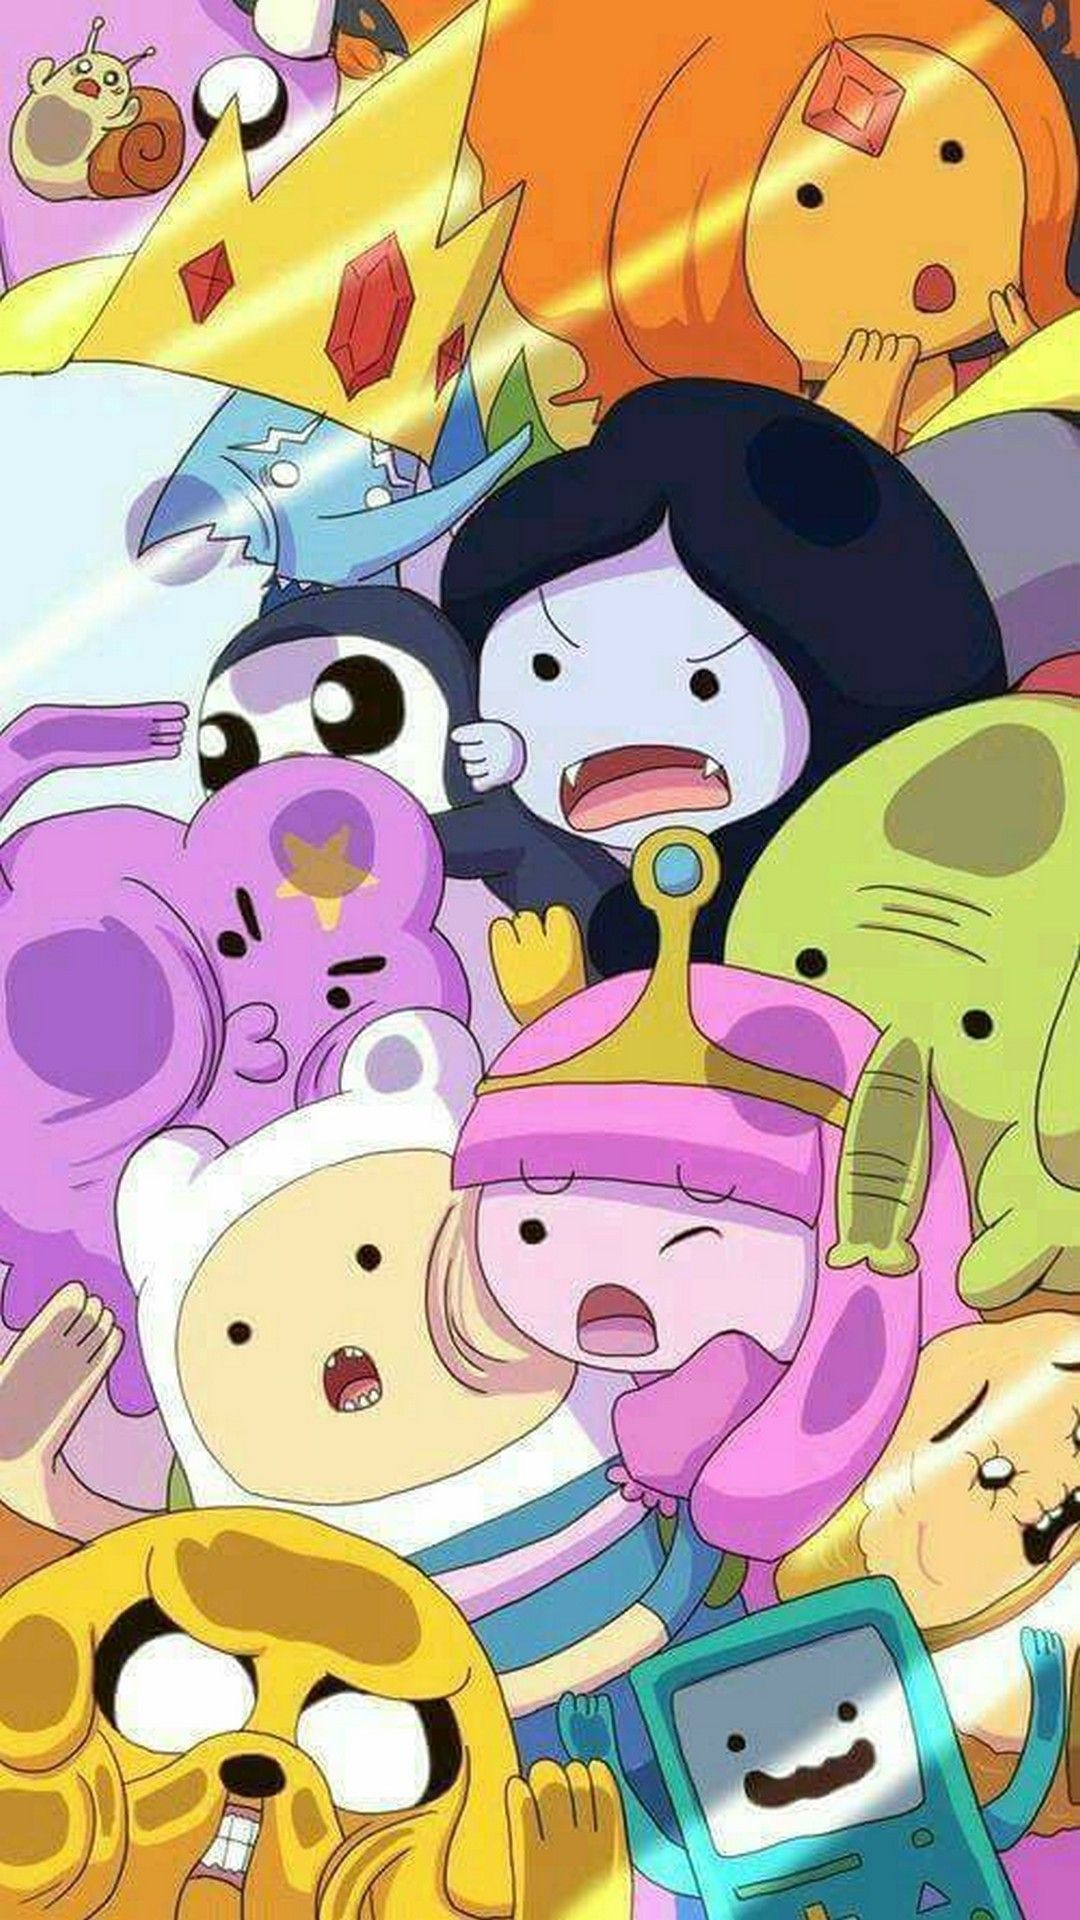 Aesthetic Adventure Time Wallpaper Iphone Adventure Time Cartoon Adventure Time Wallpaper Cartoon Wallpaper